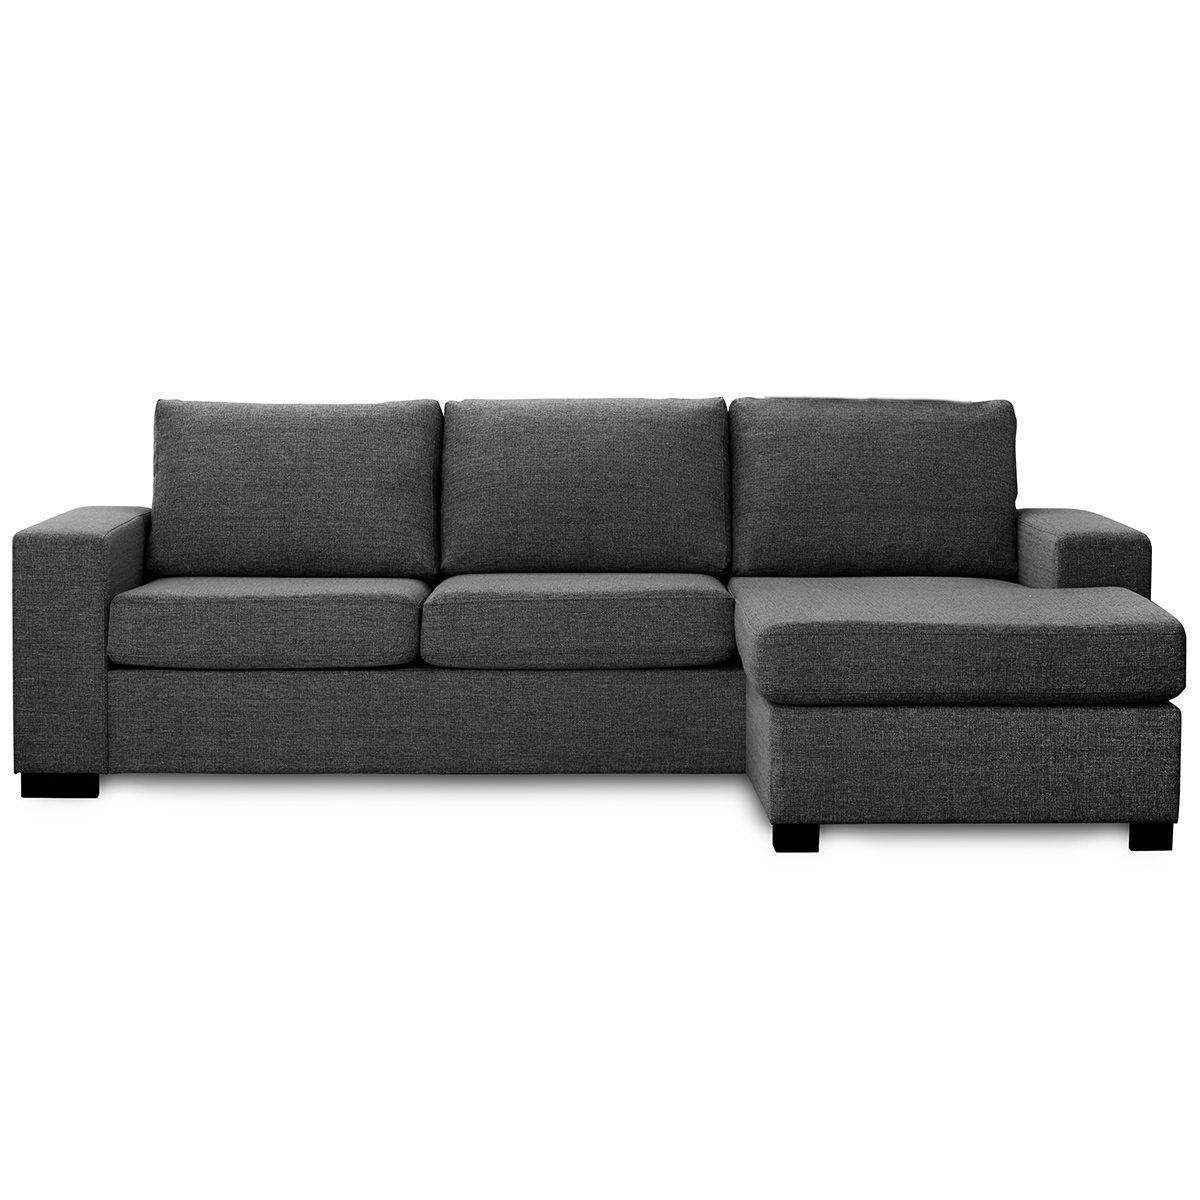 Billige Chaiselong Sofa Chaiselong Sofa Mørkgrå Vendbar Detroit